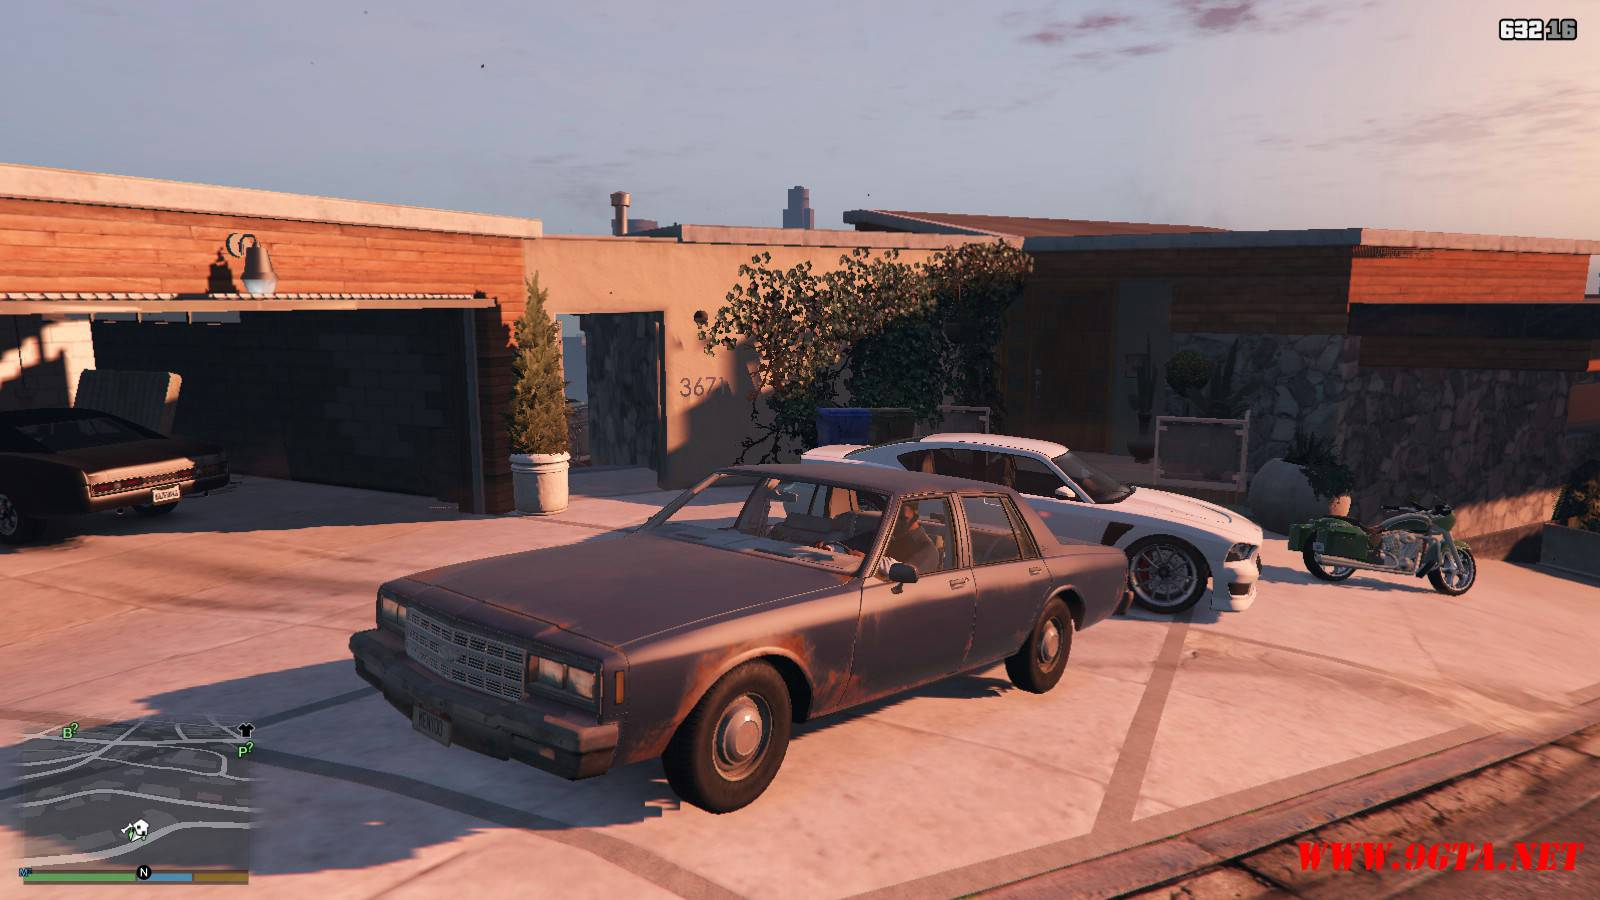 1985 Chevrolet Impala v1.1 Mod For GTA5 (1)